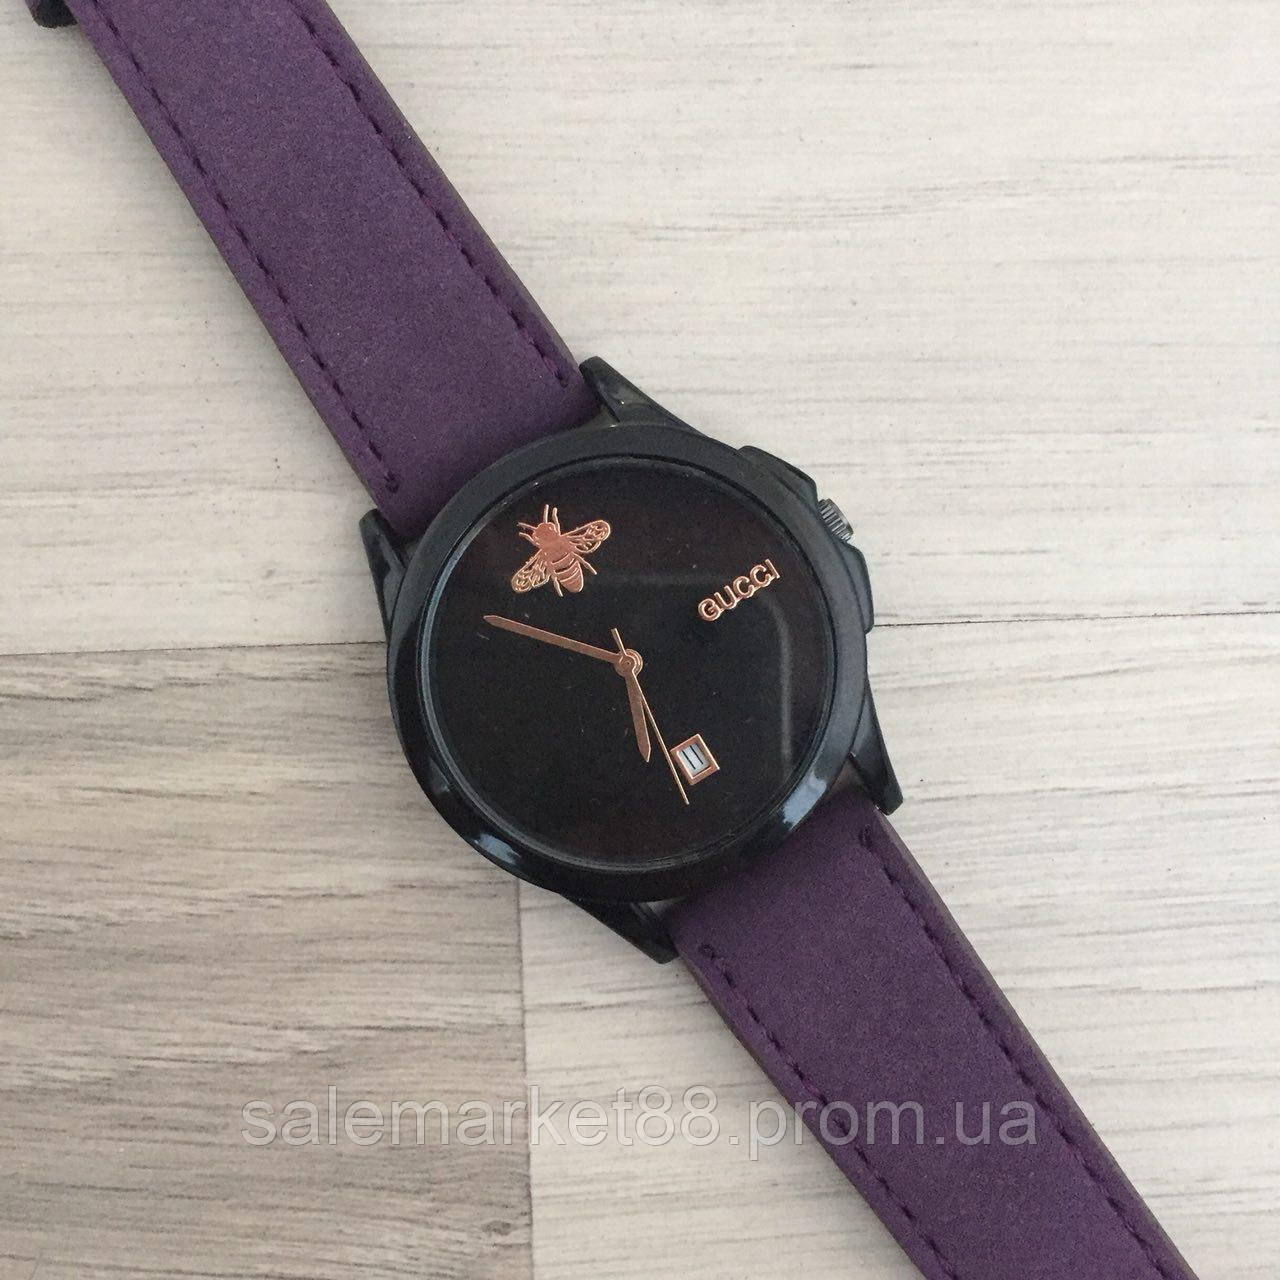 Gucci 1483 Violet-Black